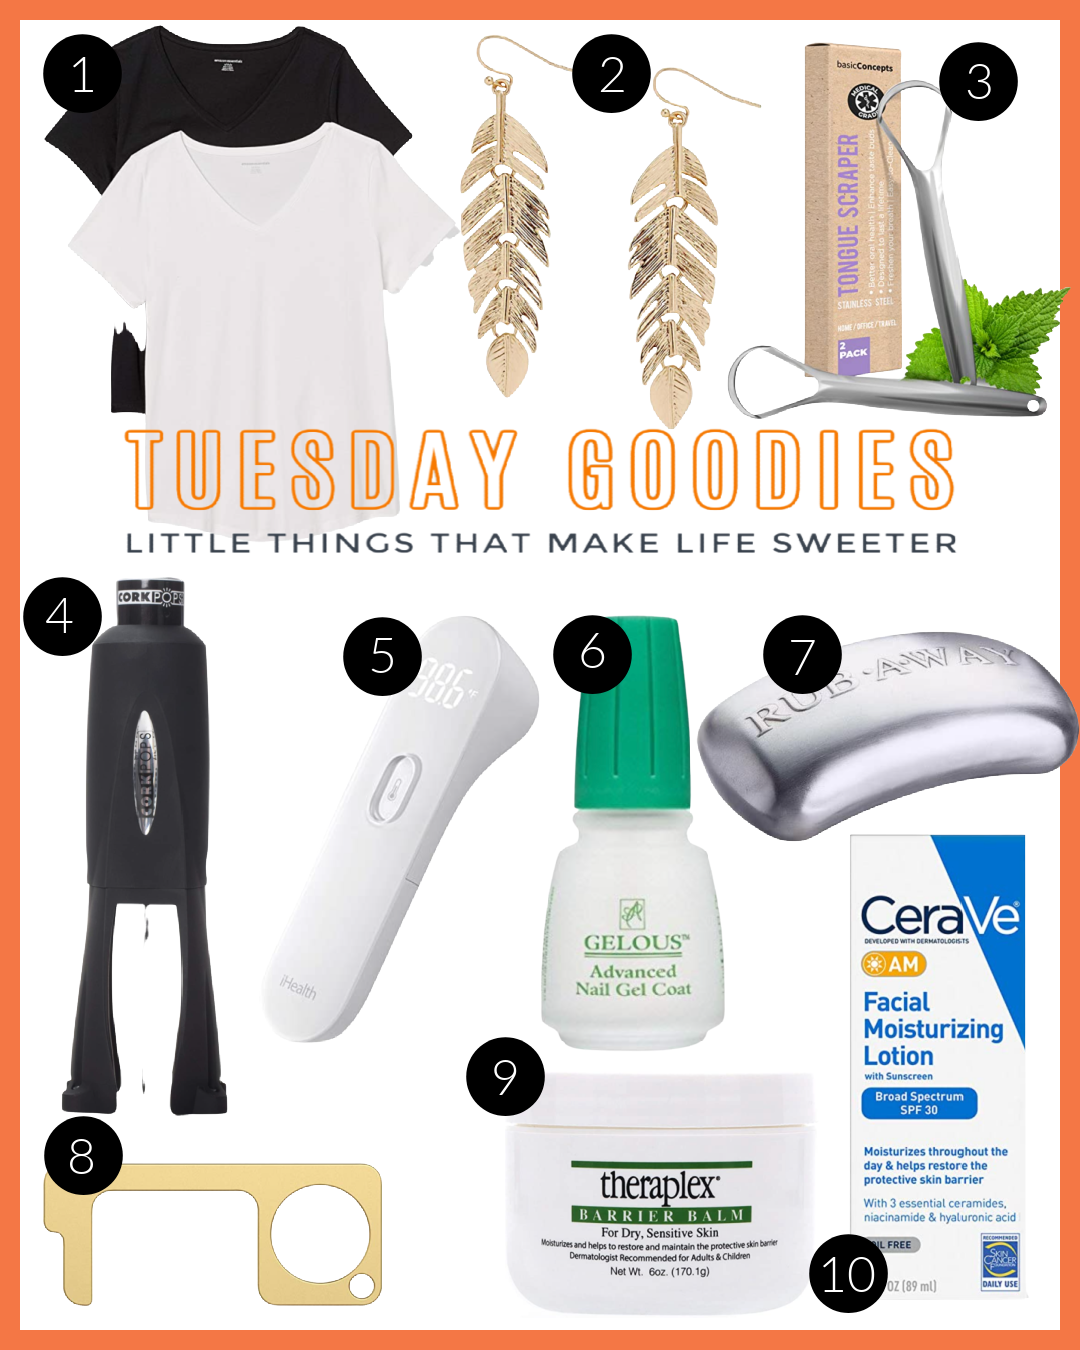 Top 10 Tuesday Goodies